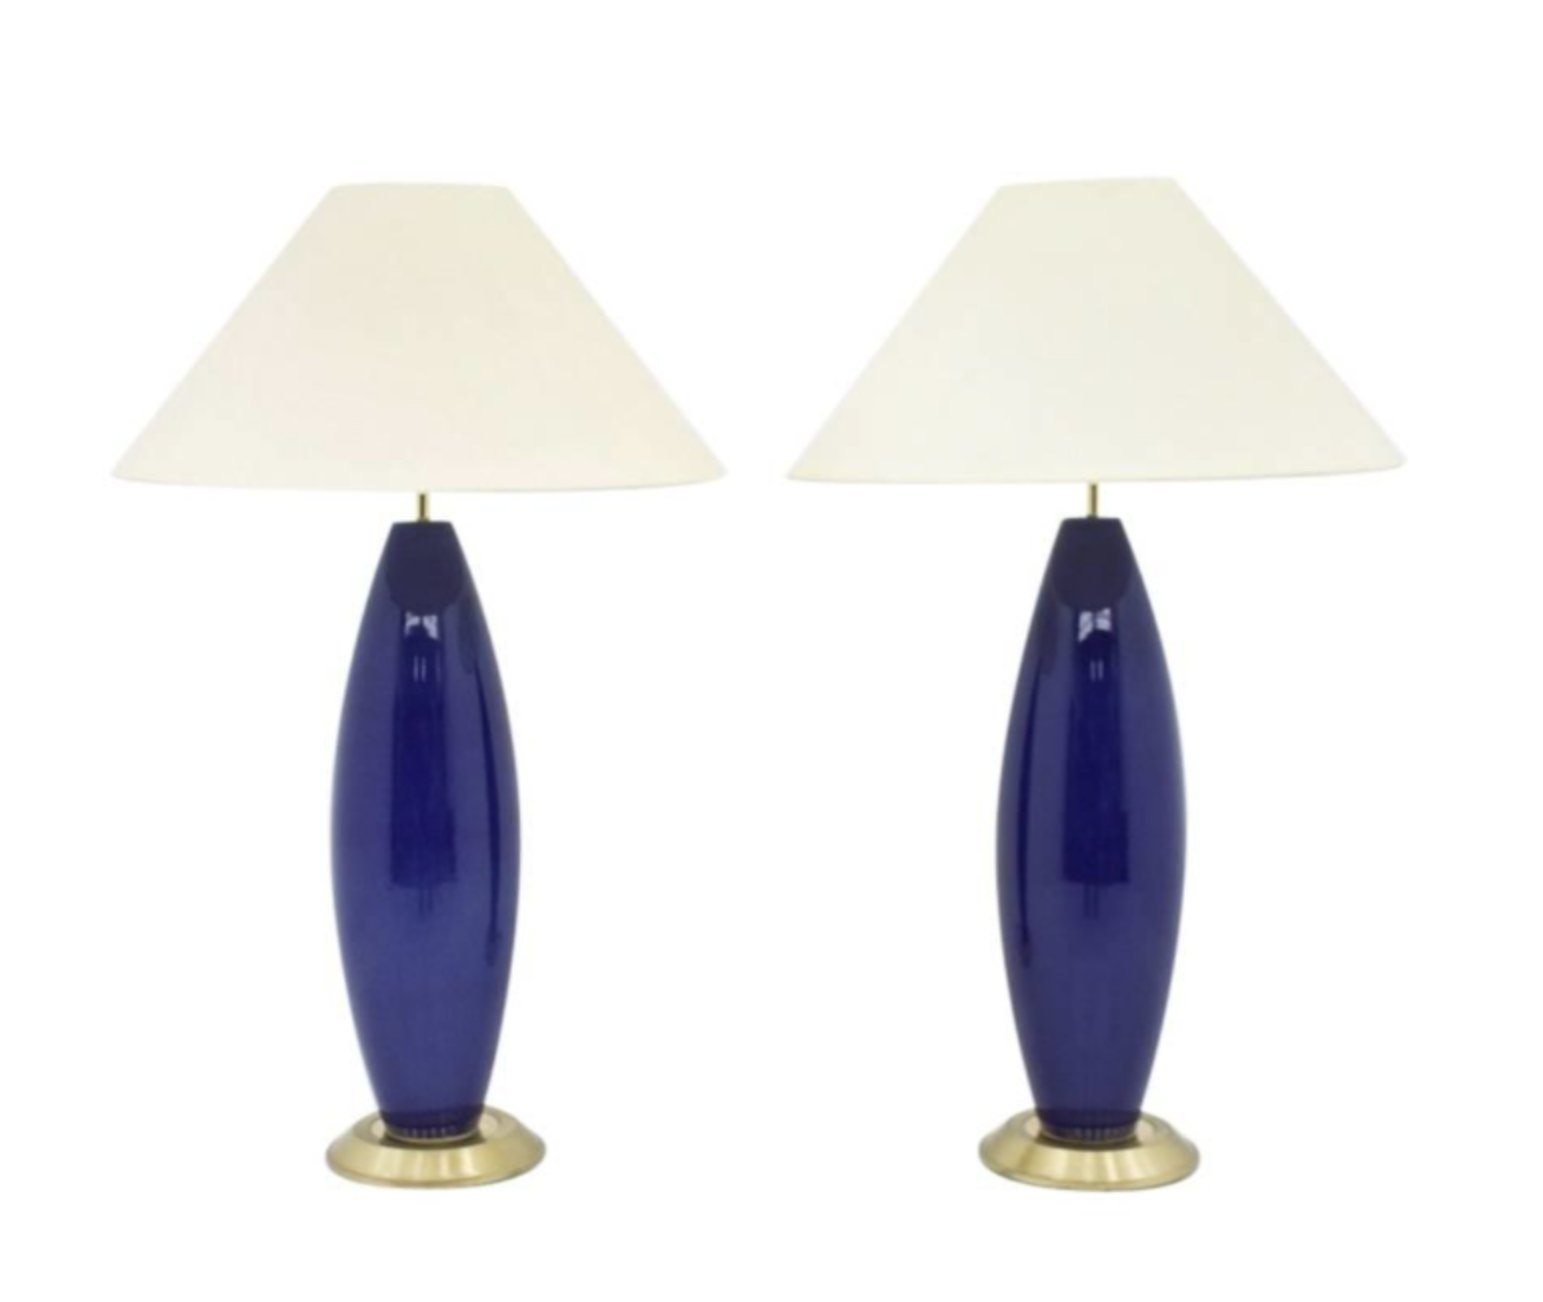 Pair Of Cobalt Blue Glass Table Lamps With Brass Base 1970s 85194